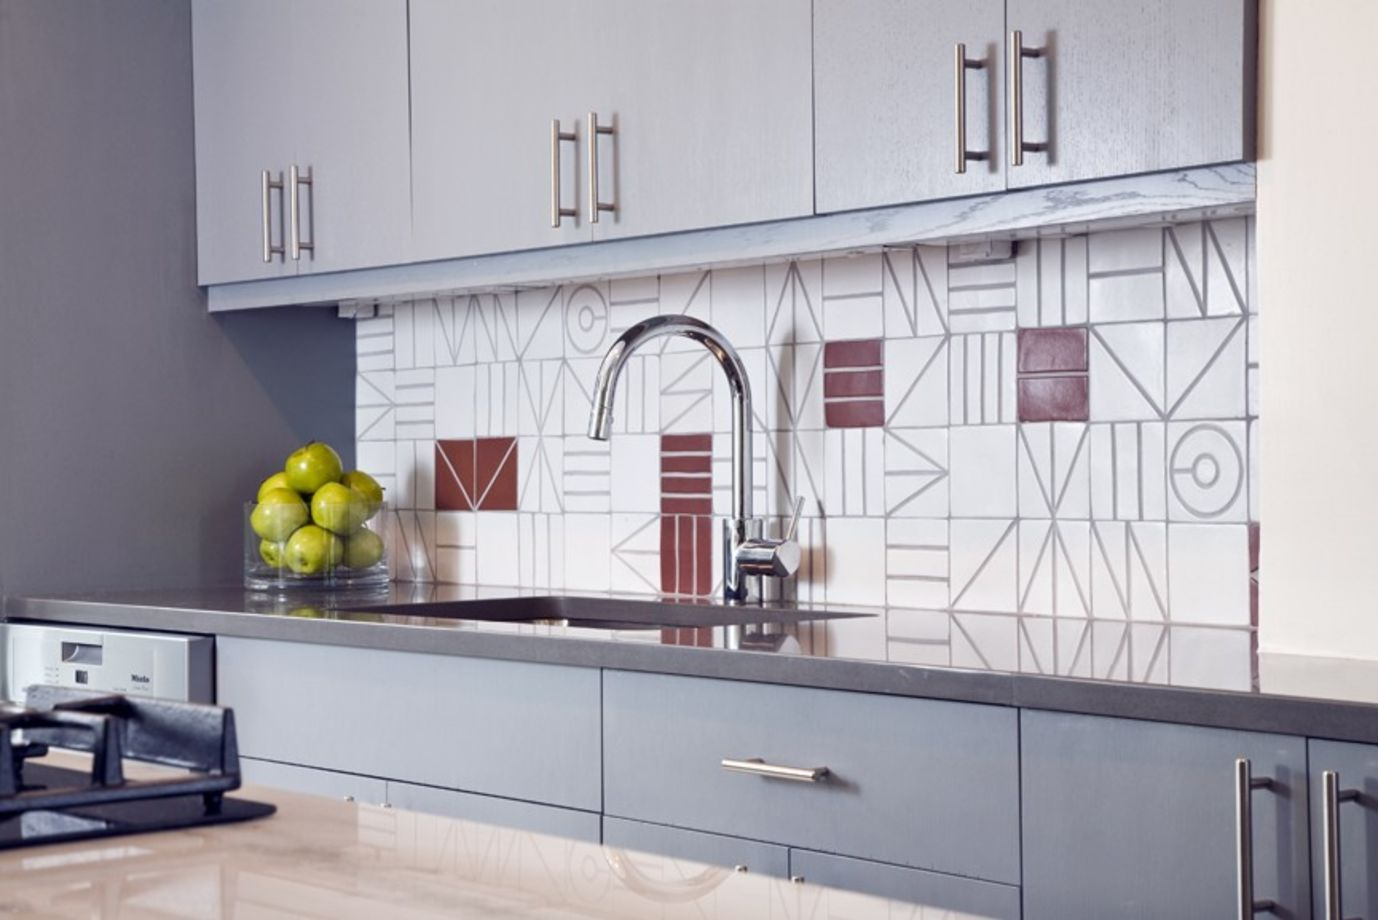 Porch Geometric Kitchen Tile From Wentworth Inc Kitchen Backsplash Tile Designs Kitchen Tiles Backsplash Unique Kitchen Backsplash